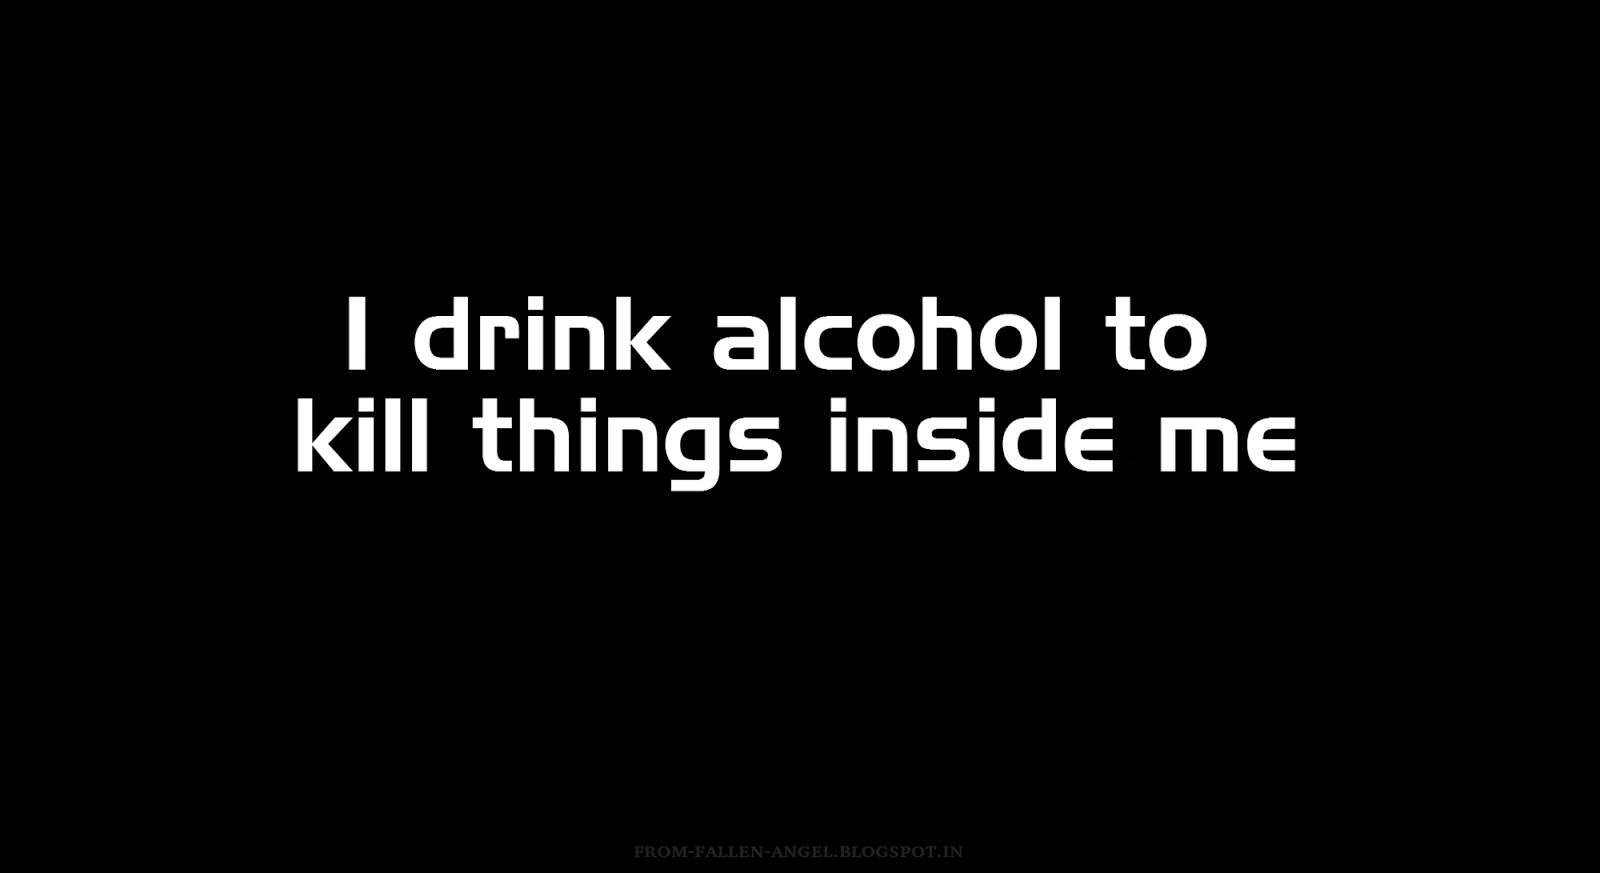 I drink alcohol to kill things inside me